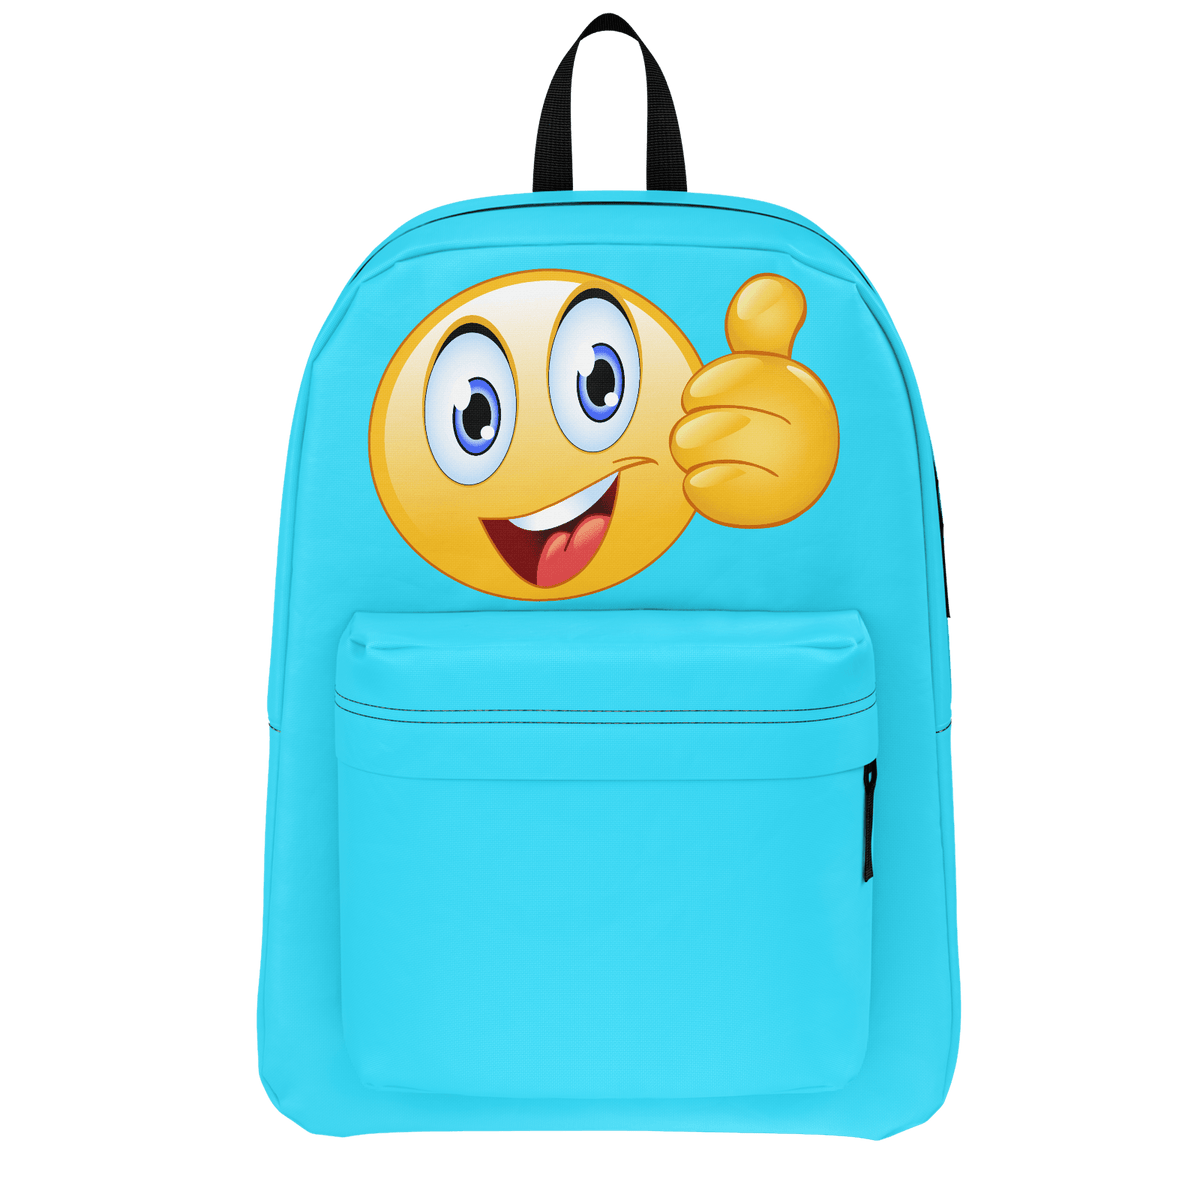 Thumbs Up Backpack